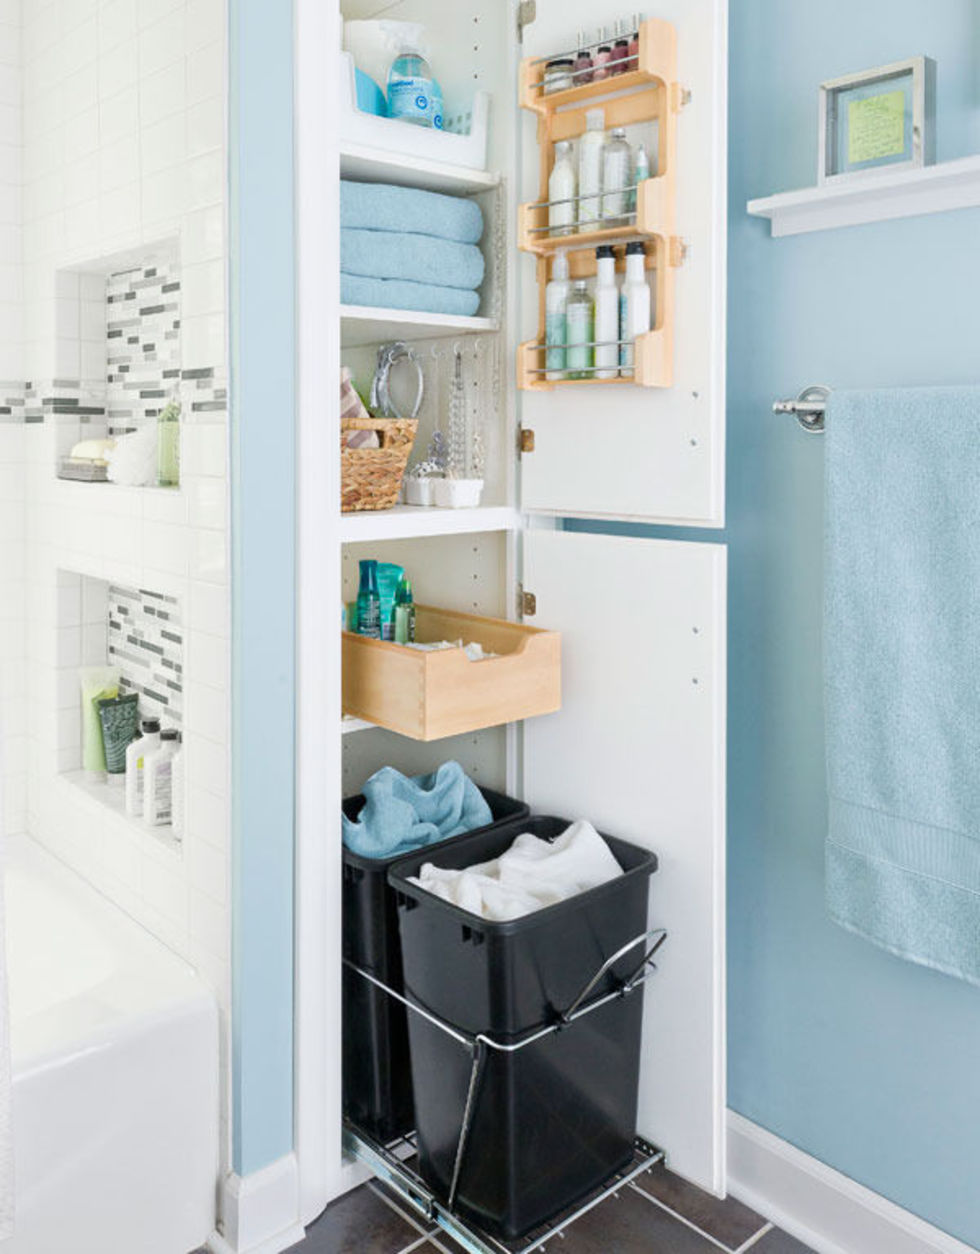 Beautiful Bathroom Bins small bathroom cabinets ideas. zamp.co